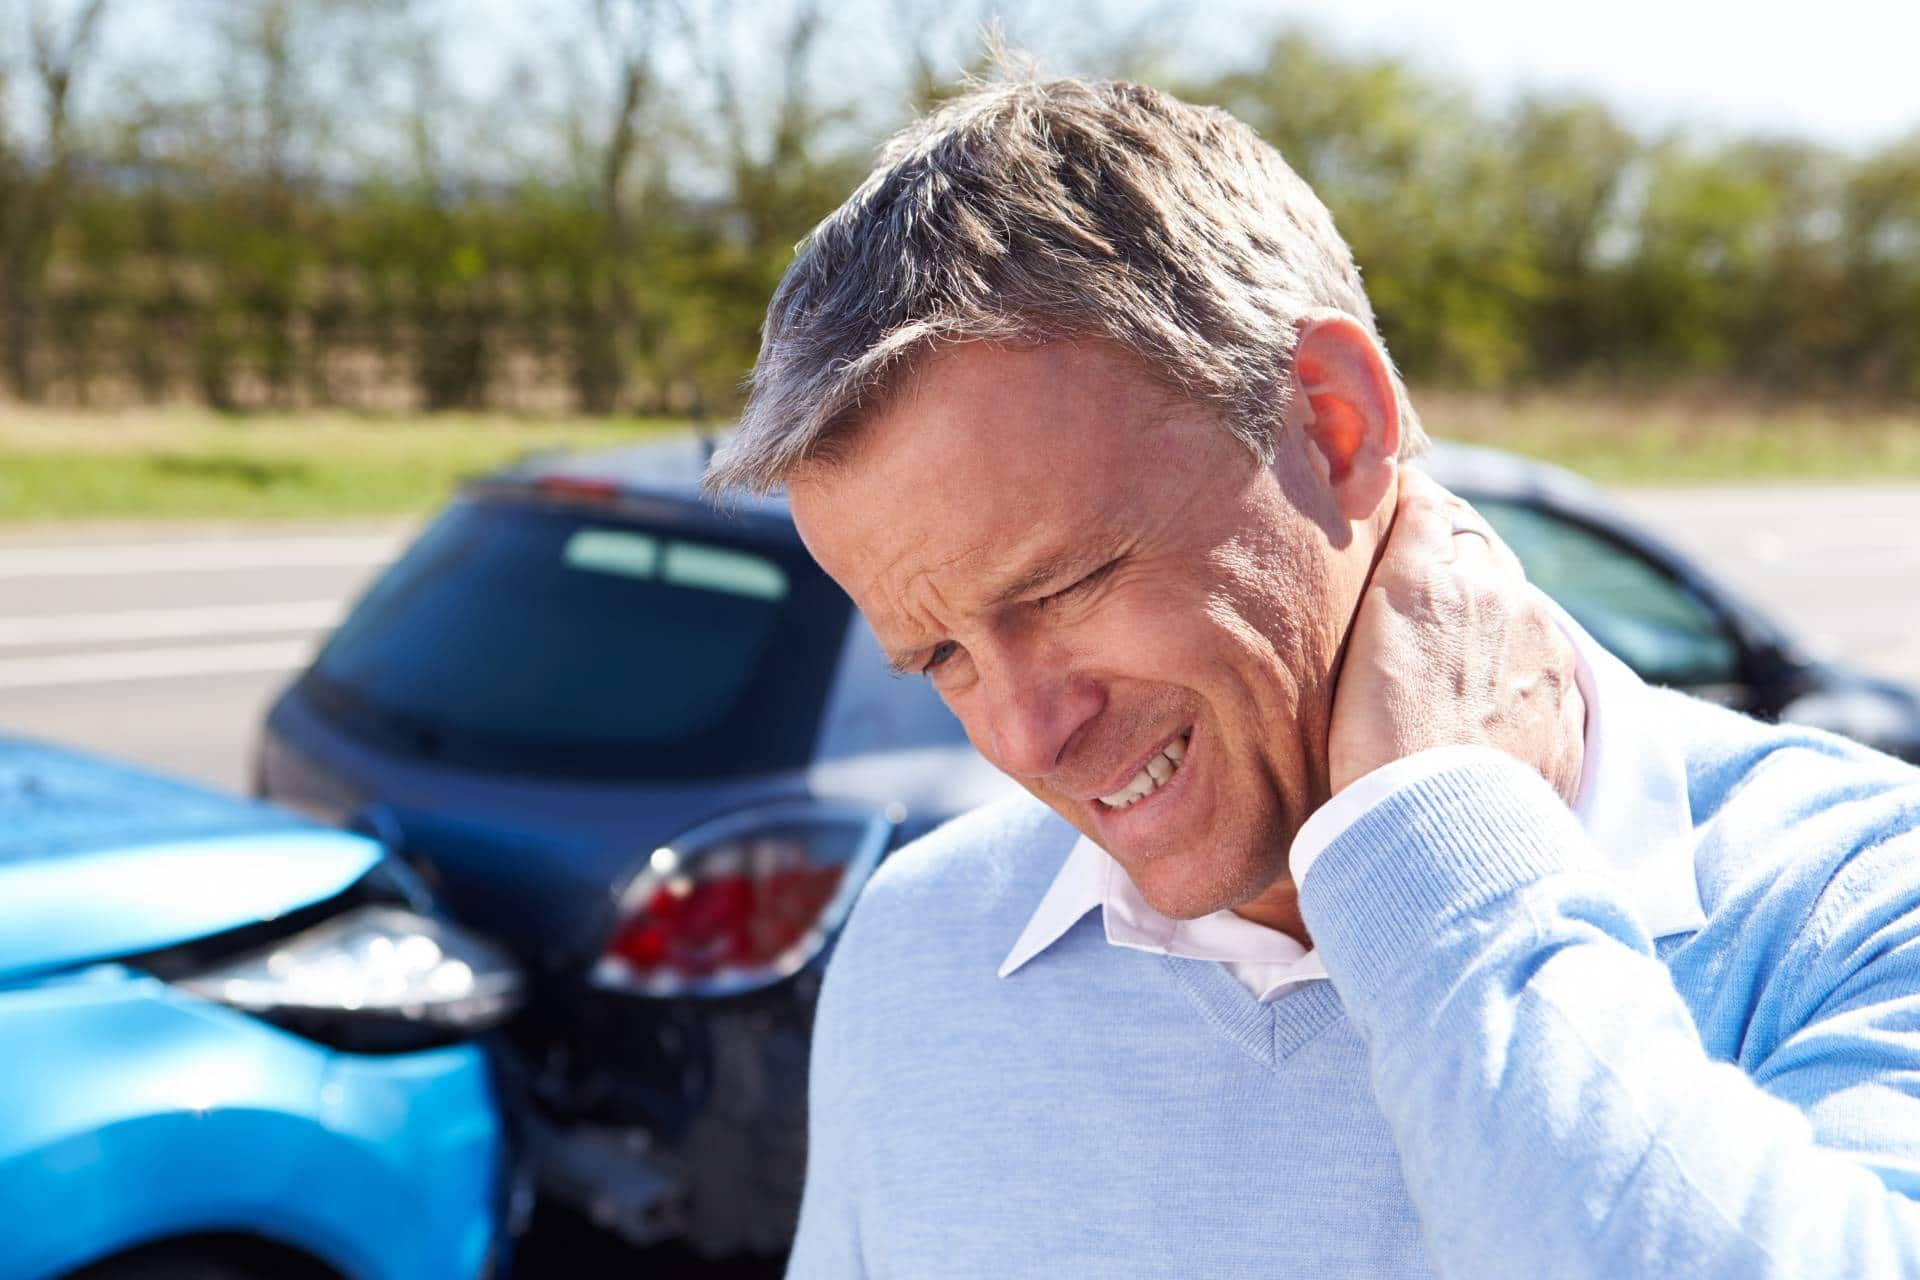 Injured in an auto accident? Schedule a free consultation with our personal injury lawyers today at the Angell Law firm in Lindbergh.